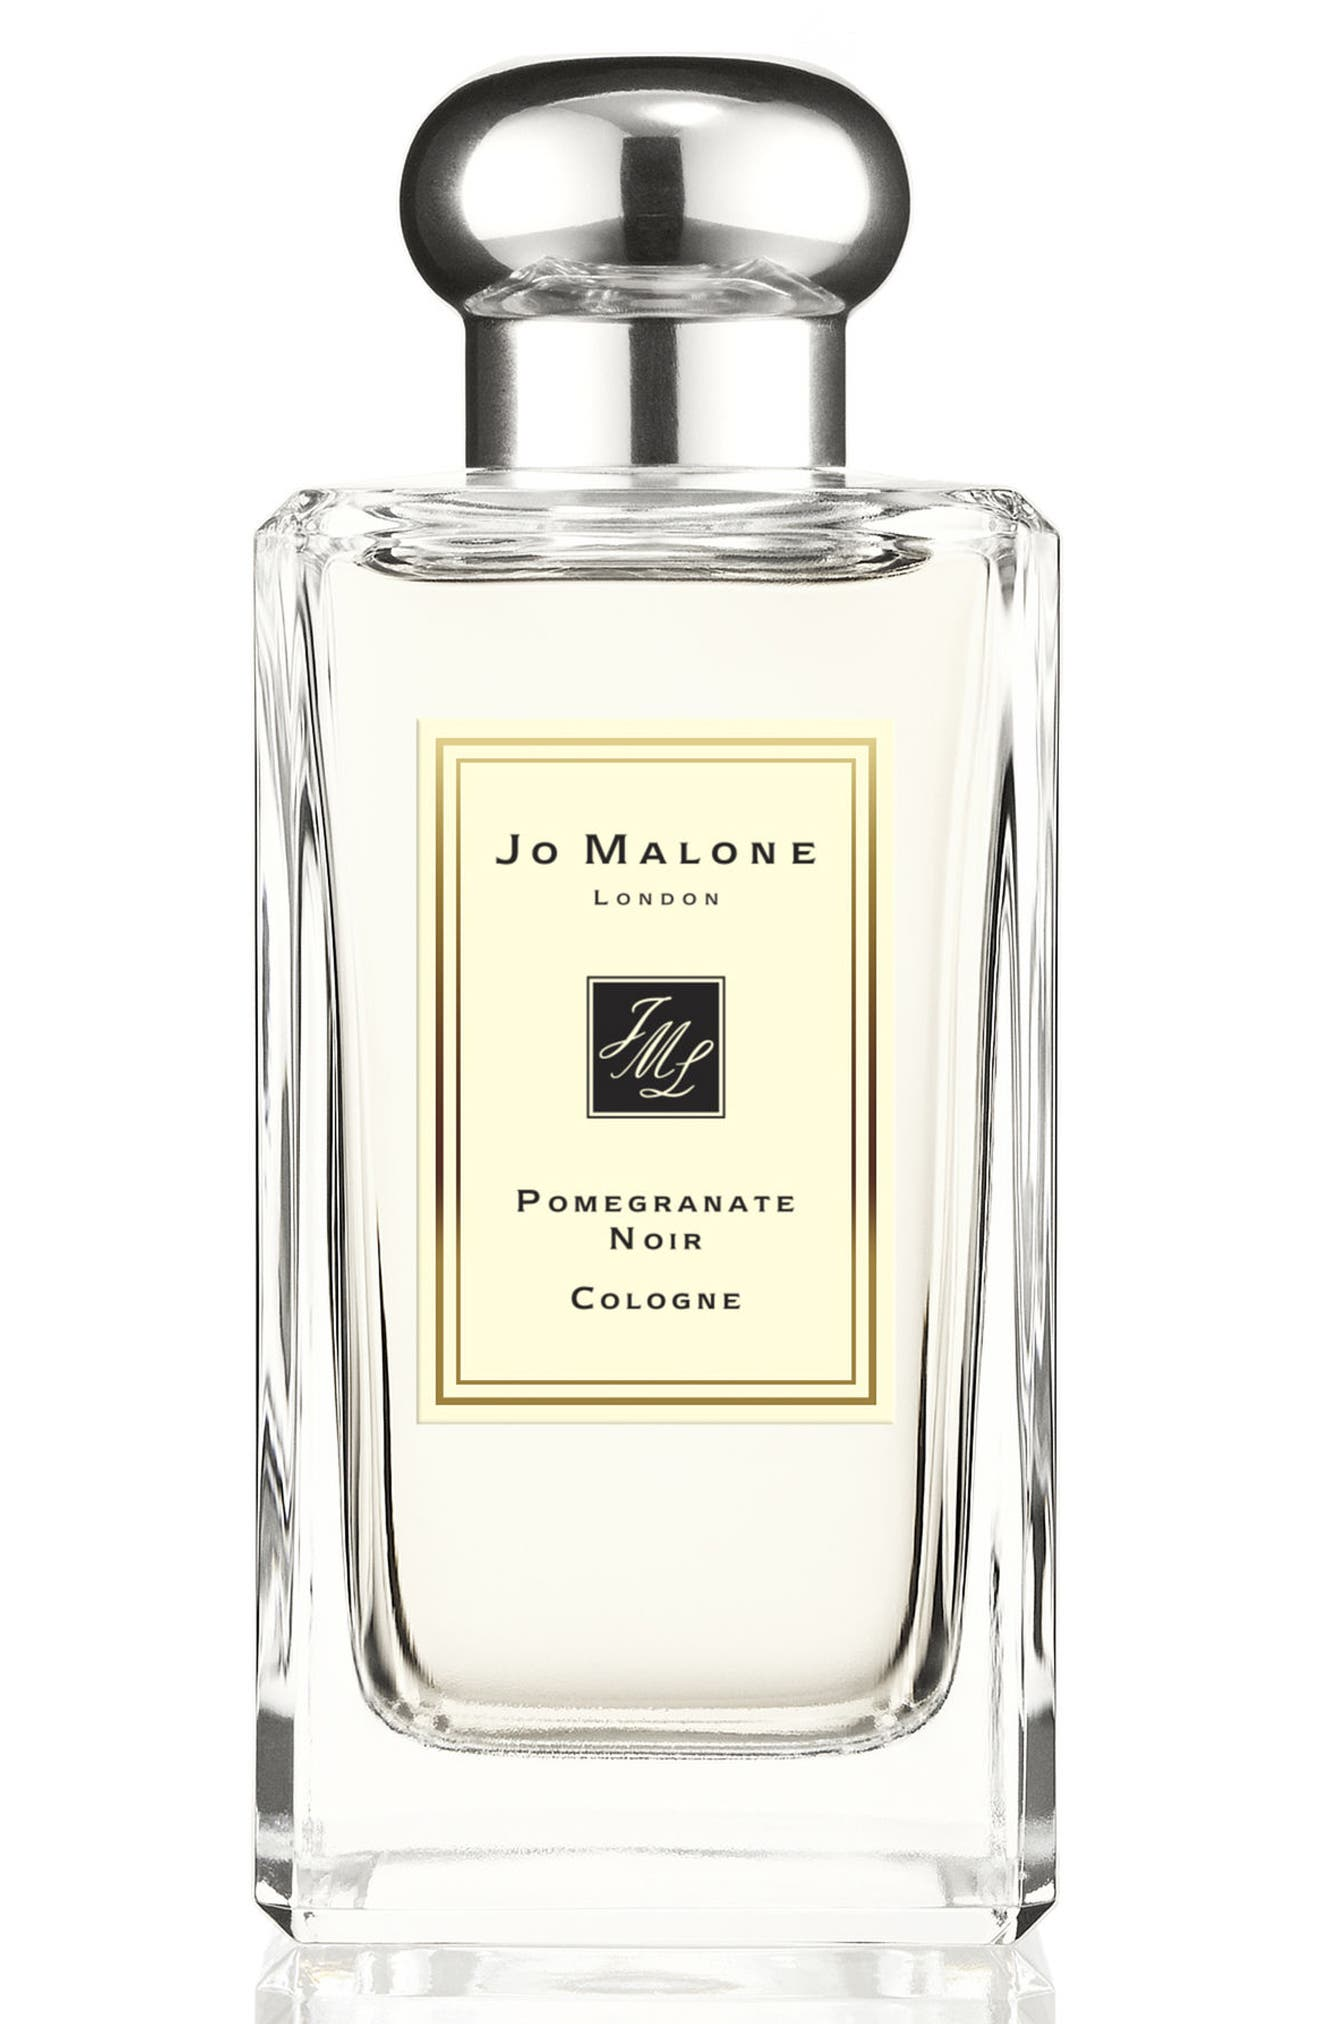 Jo Malone London™ 'Pomegranate Noir' Cologne (3.4 oz.)